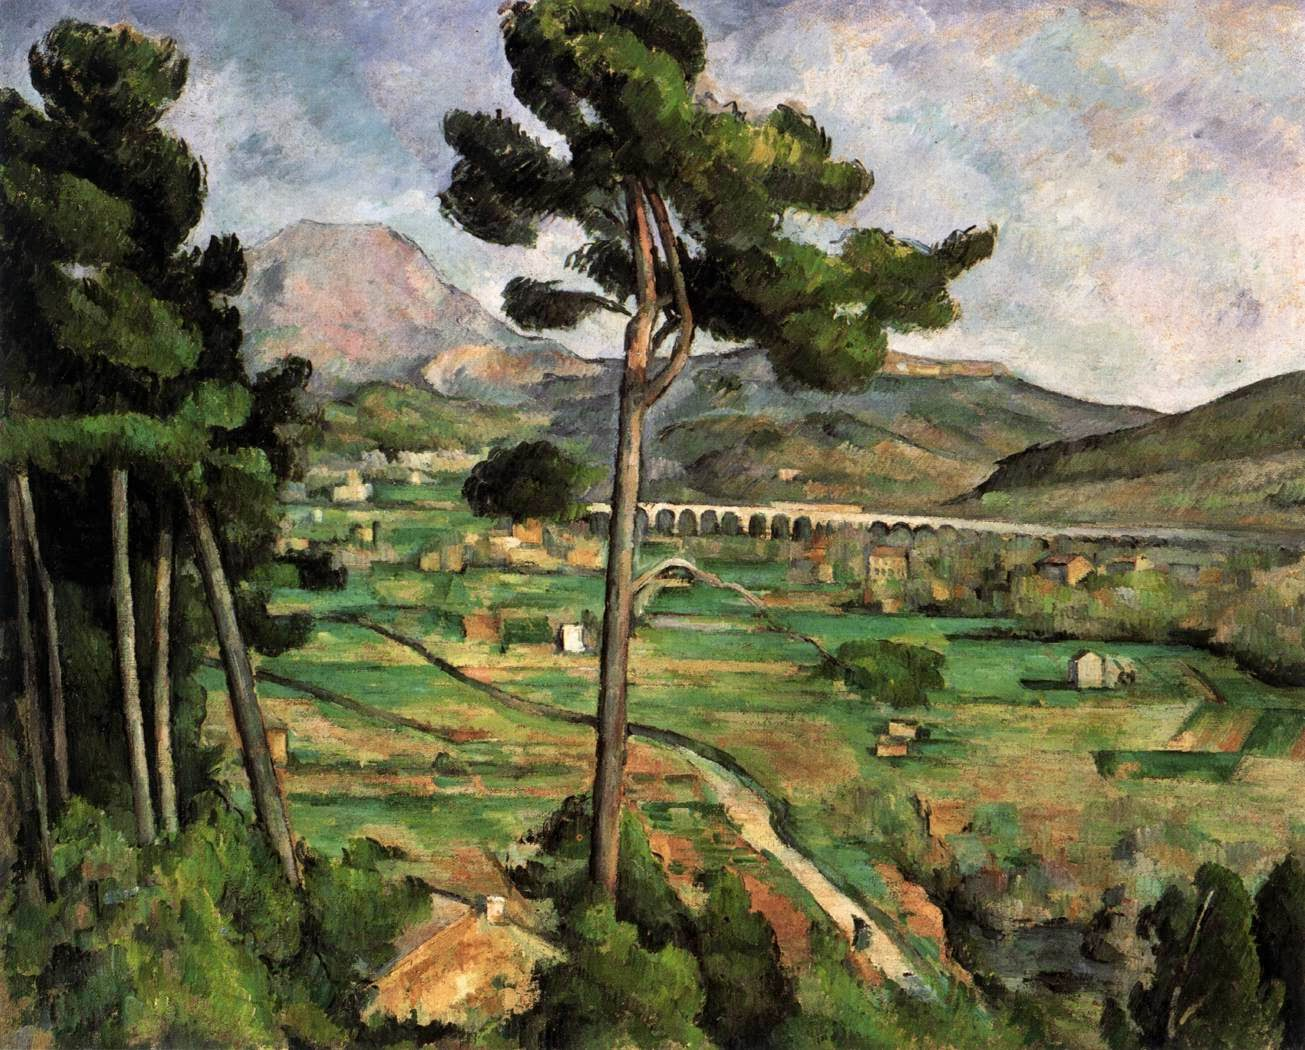 art of paul cezanne Paul cézanne, posters and prints - discover the perfect print, canvas or photo for  your space with artcouk.